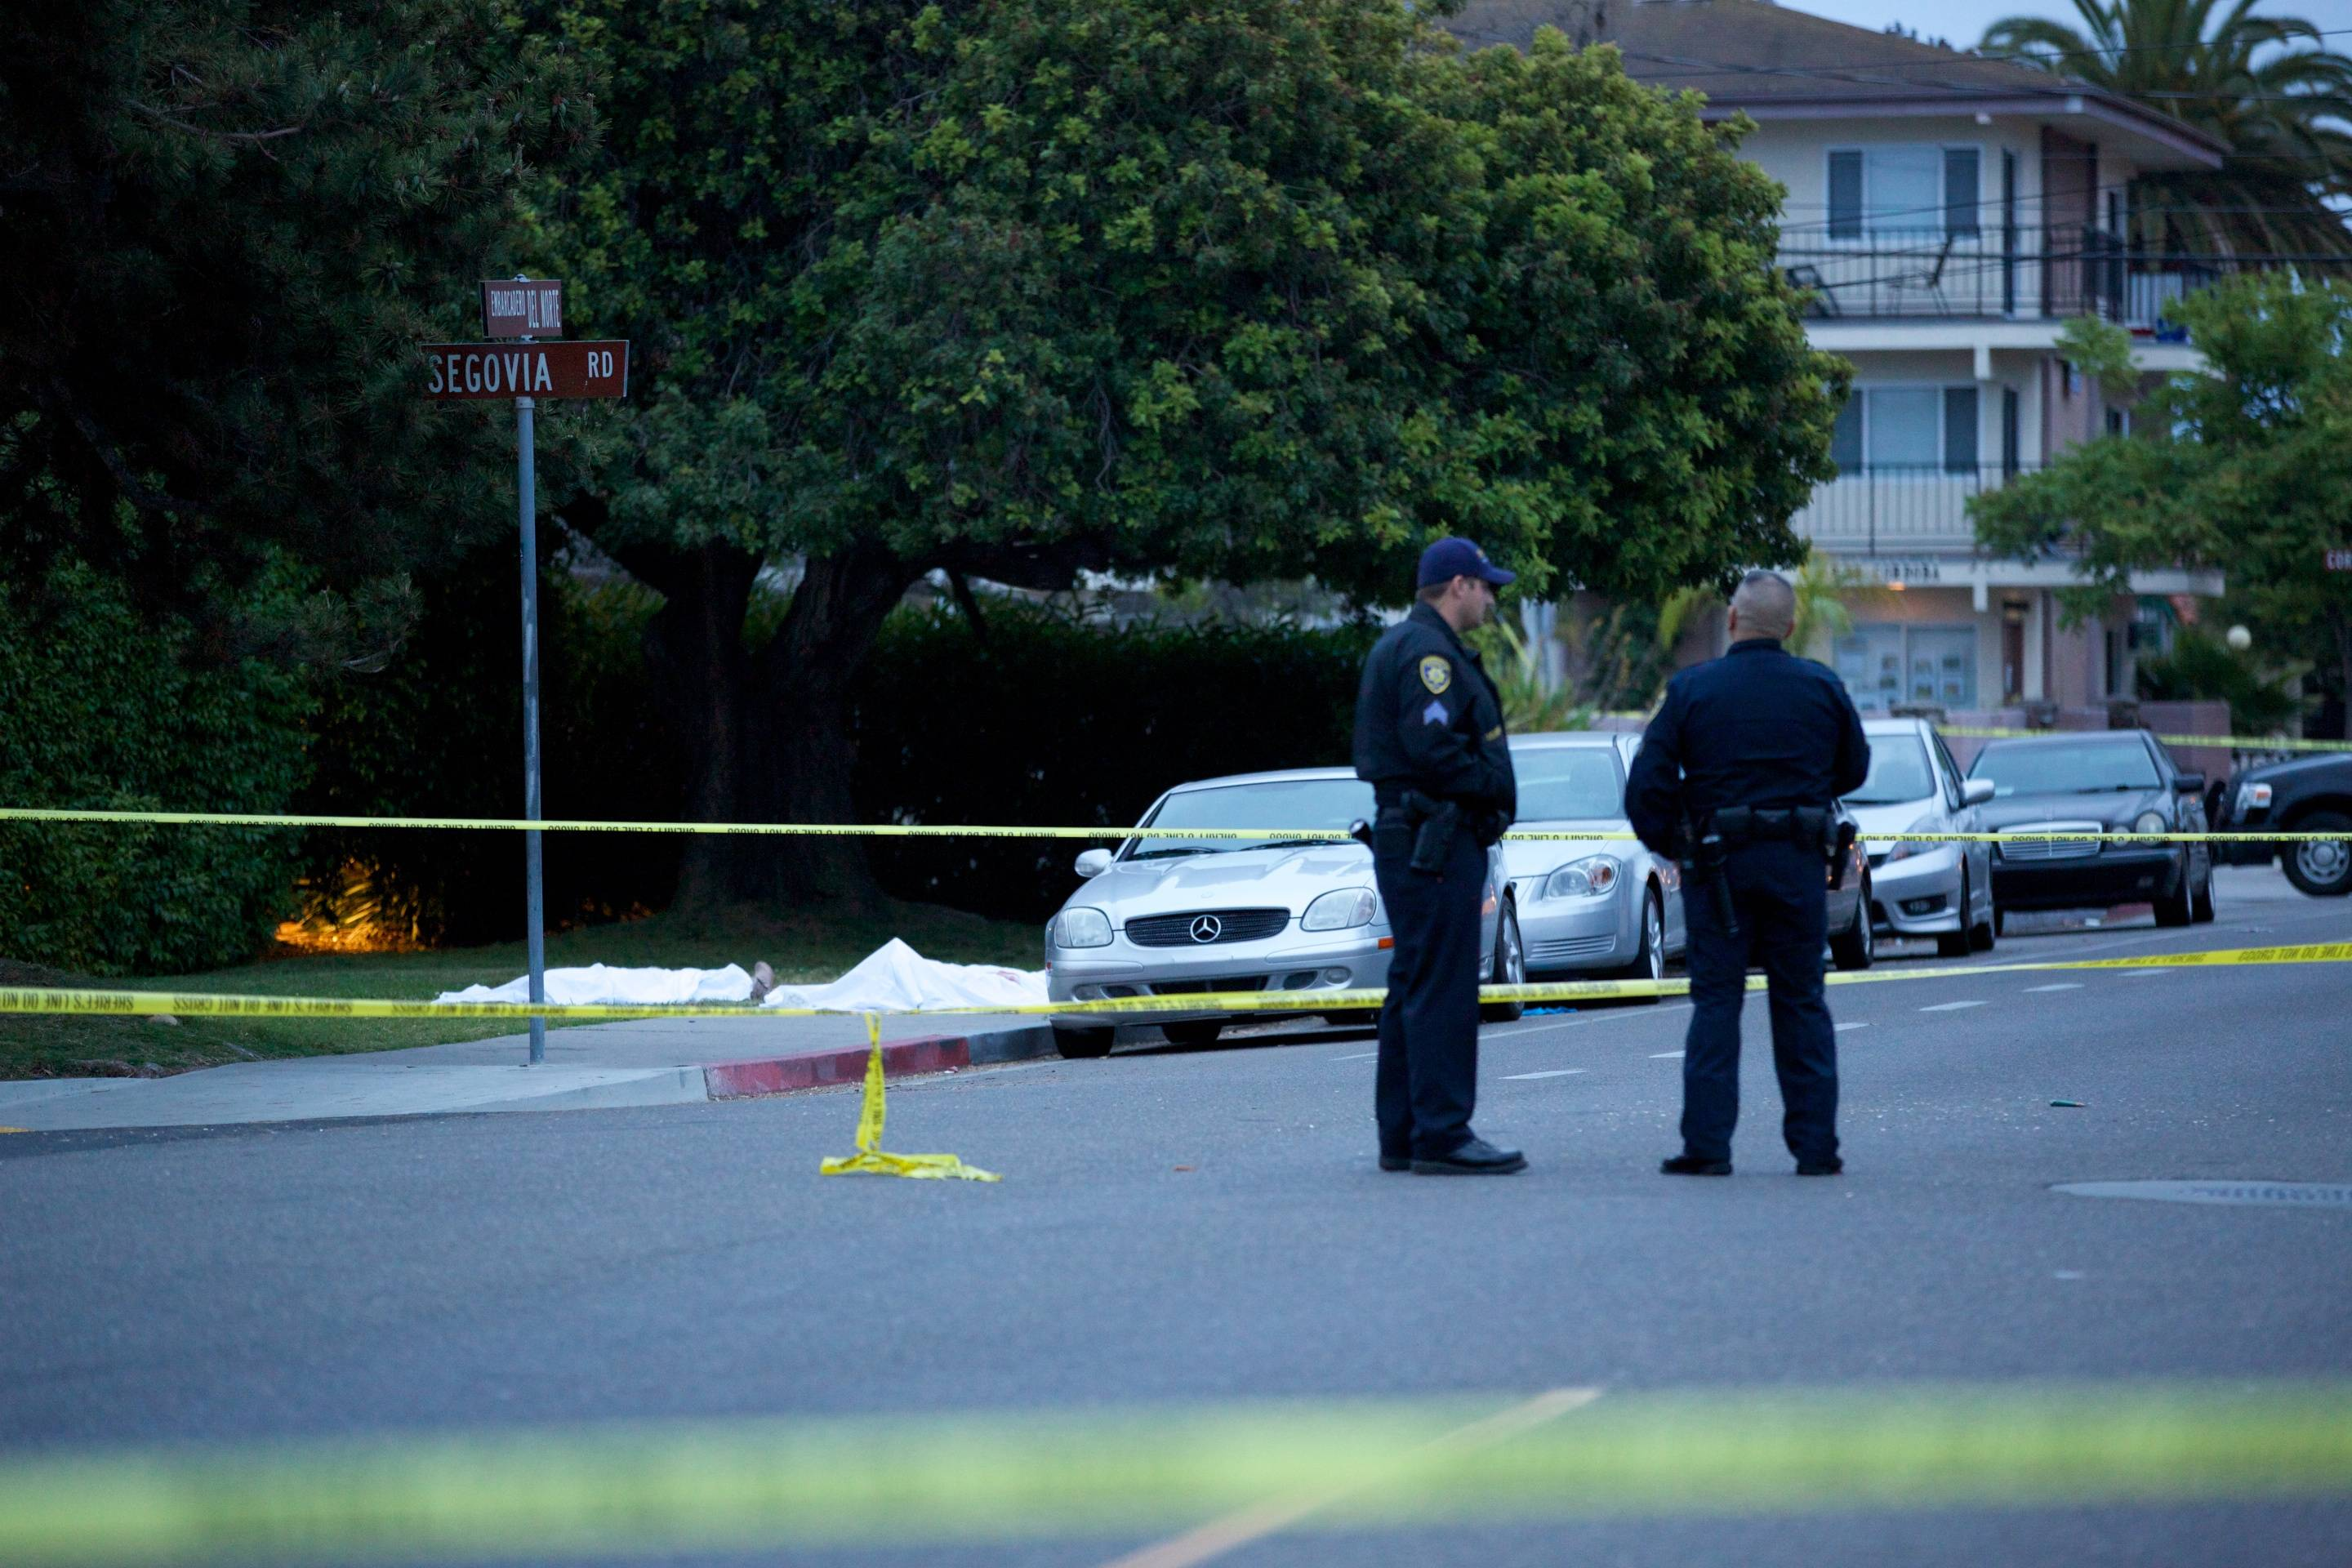 Police wait at the scene after a drive-by shooting left seven people dead, including the attacker, and others wounded on Friday, May 23, 2014, in Isla Vista, Calif. Alan Shifman an attorney for Hollywood director Peter Rodger, who was an assistant director on The Hunger Games, said the family believes Rodger's son, Elliot Rodger, is responsible for the shooting rampage near the Santa Barbara, California, university campus. Authorities have not confirmed the identity of the shooter.